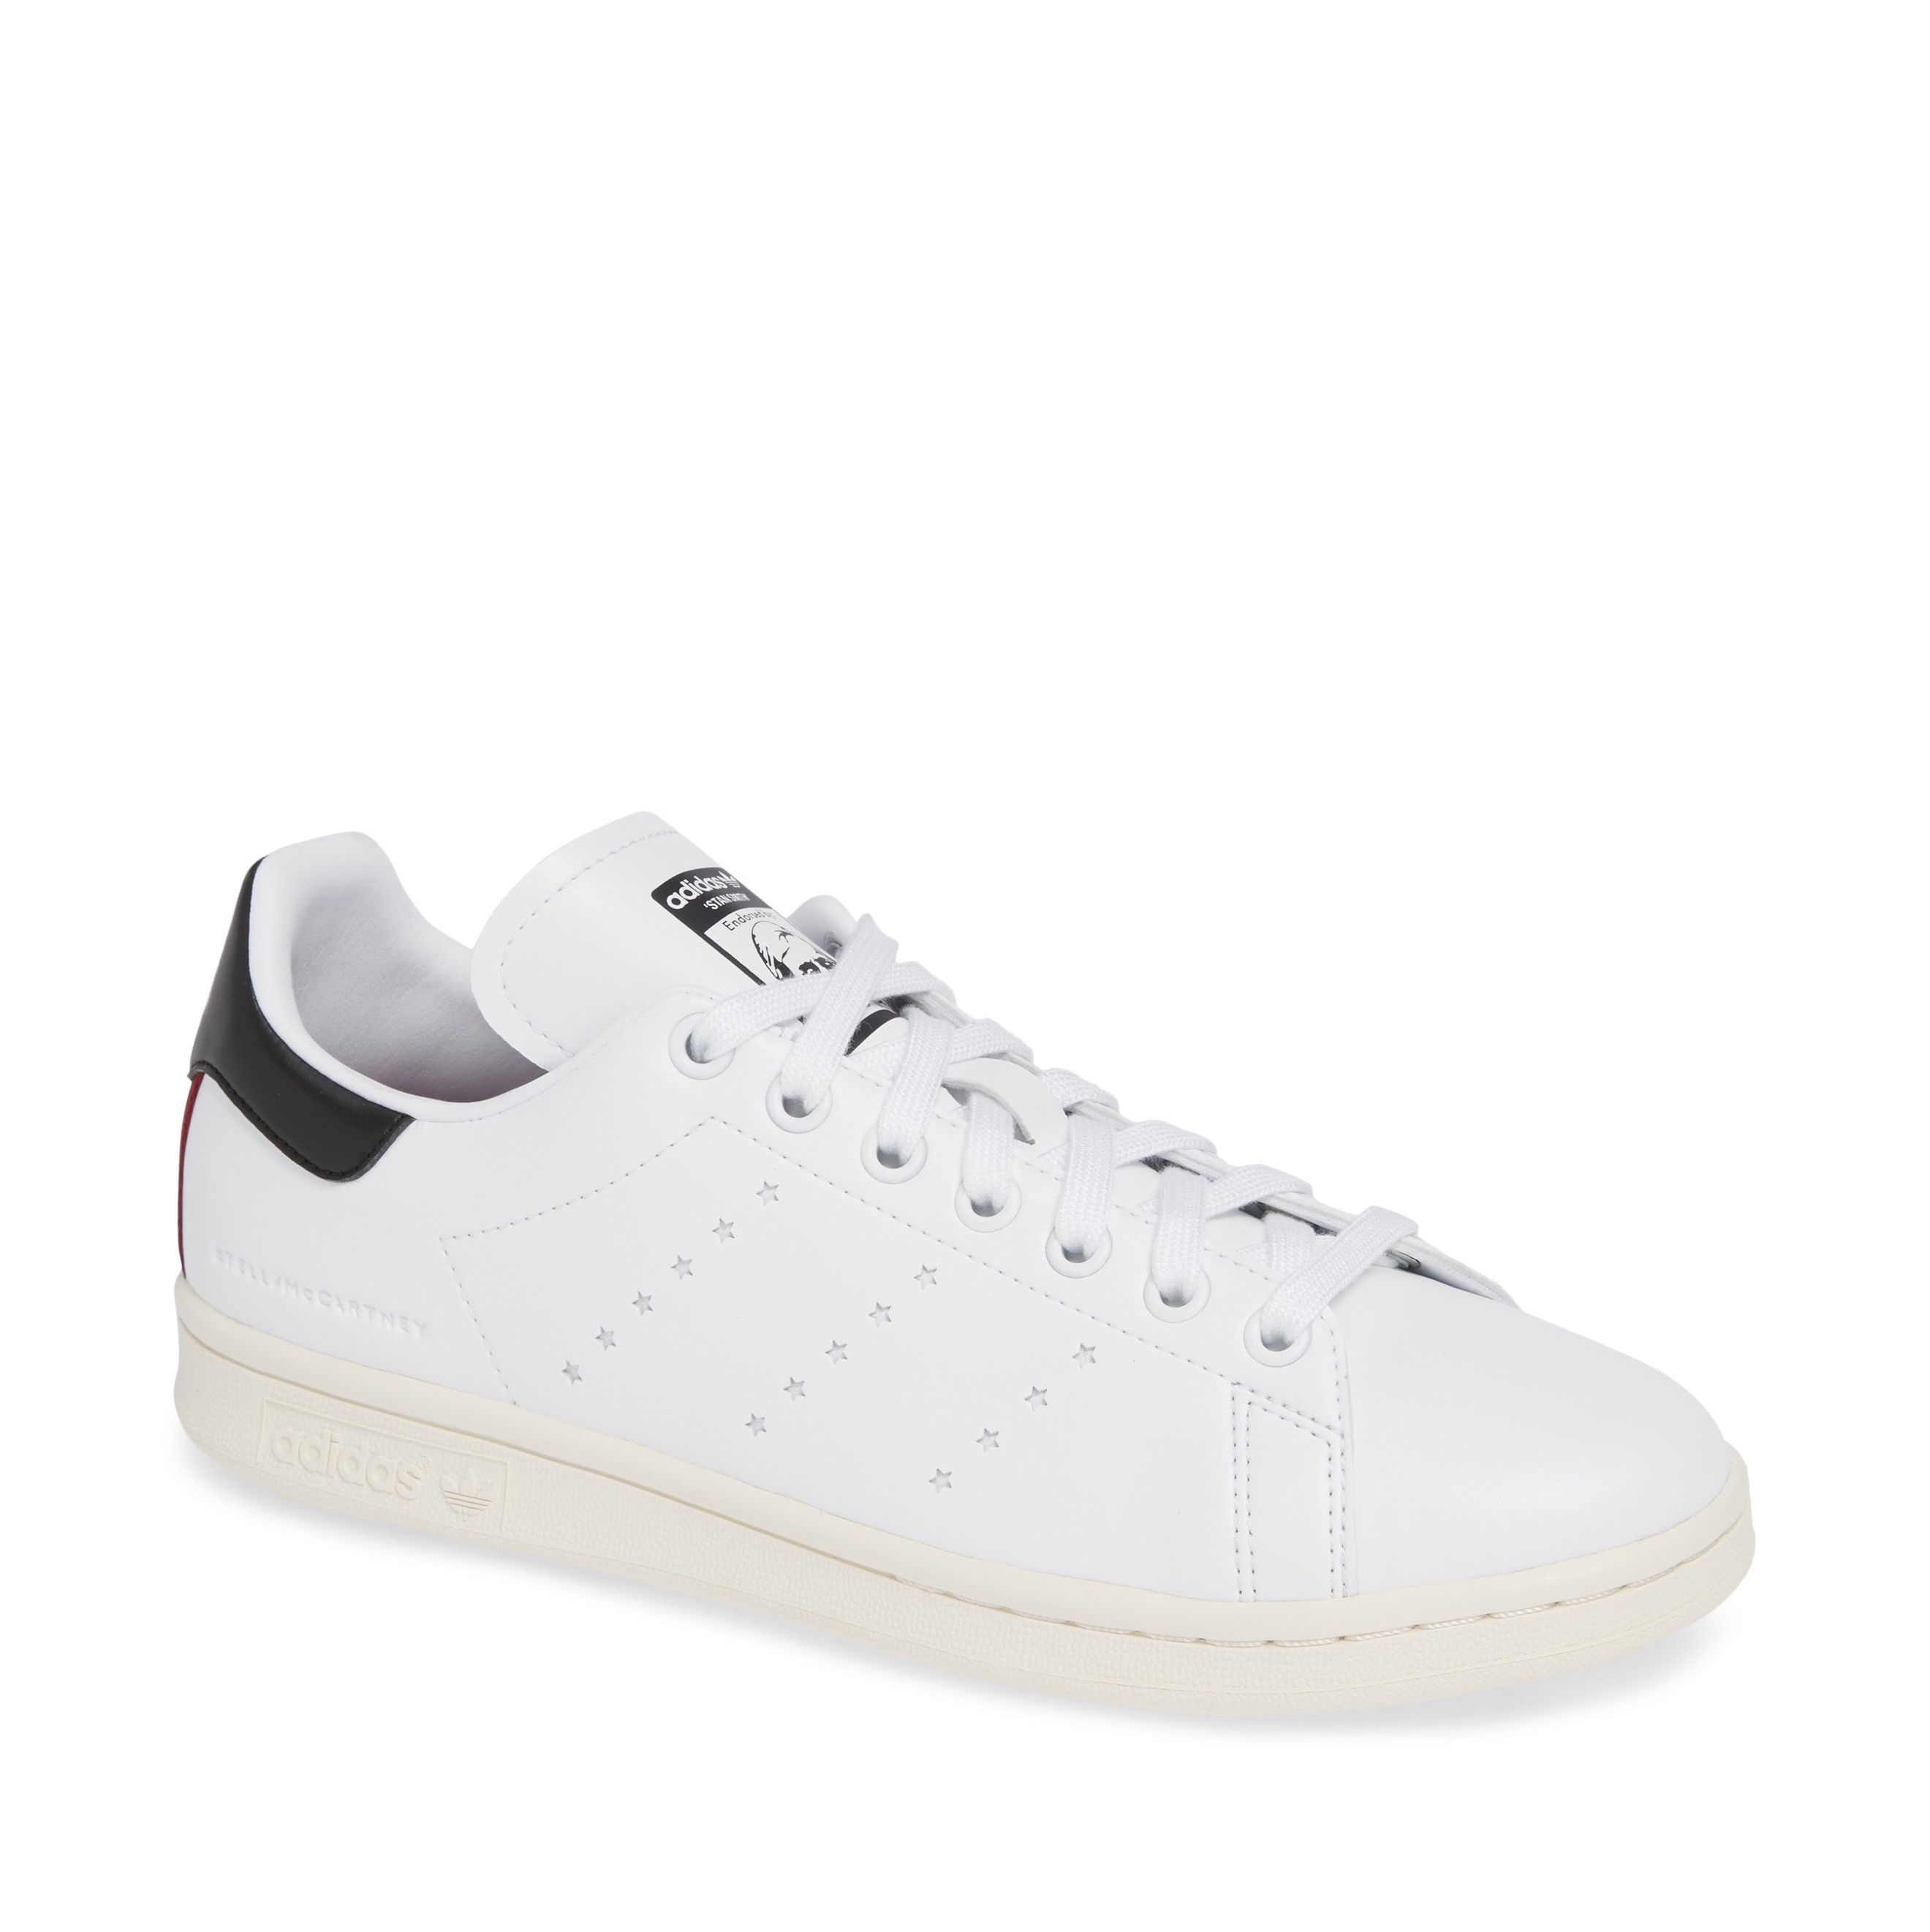 Meghan Markle Wears Adidas Stan Smith Sneakers In New Zealand ba391da9e